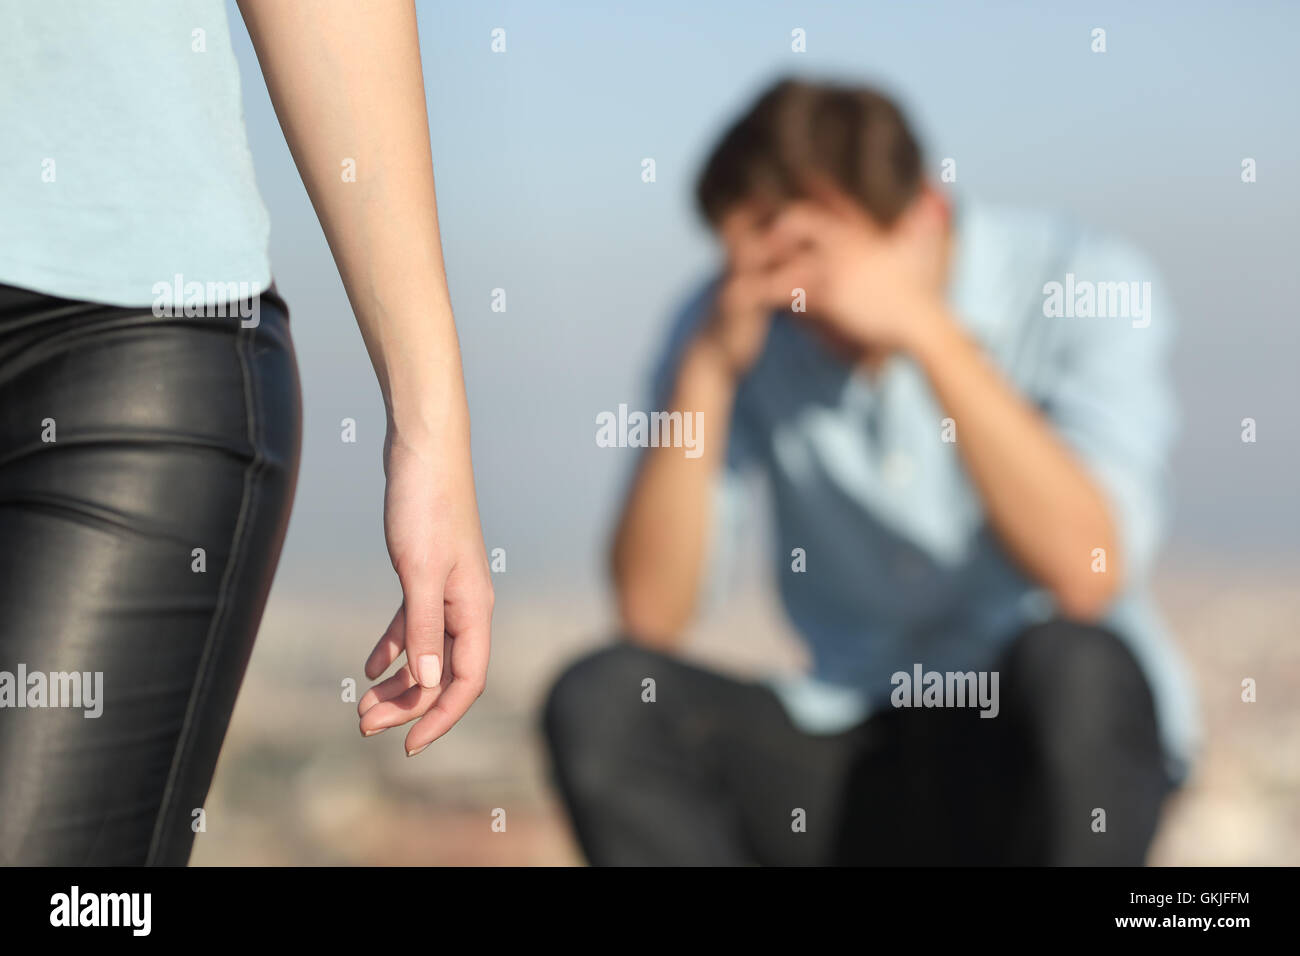 Breakup of a couple and a sad man in the background - Stock Image